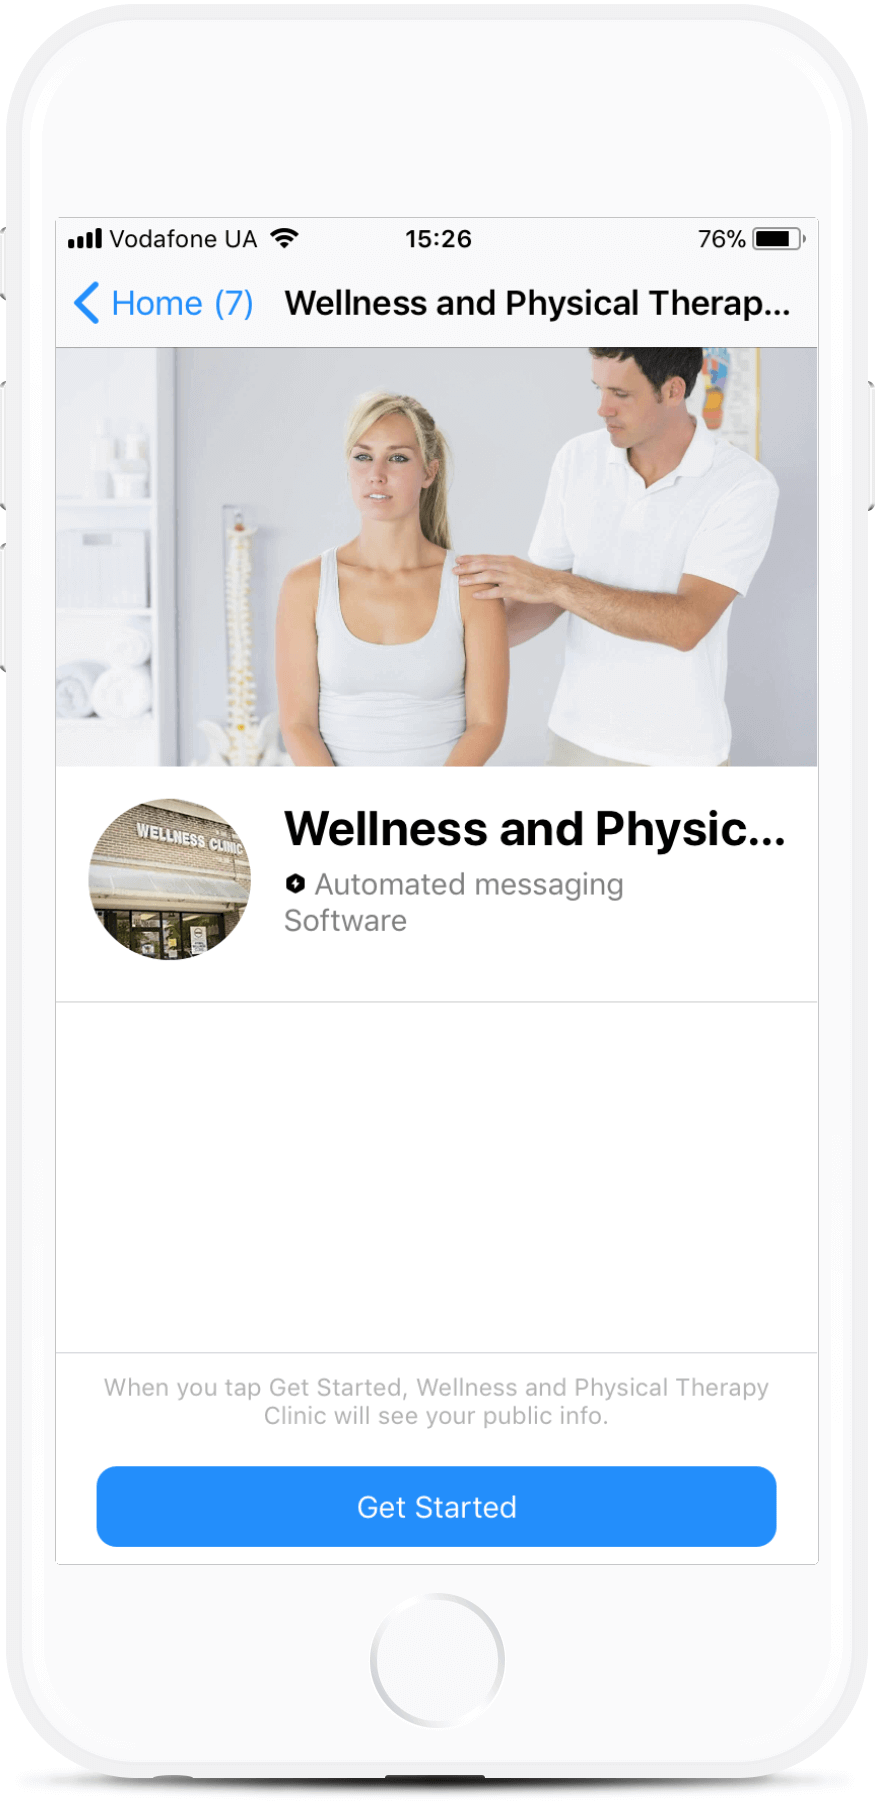 Wellness and Physical Therapy Clinic bot screenshot